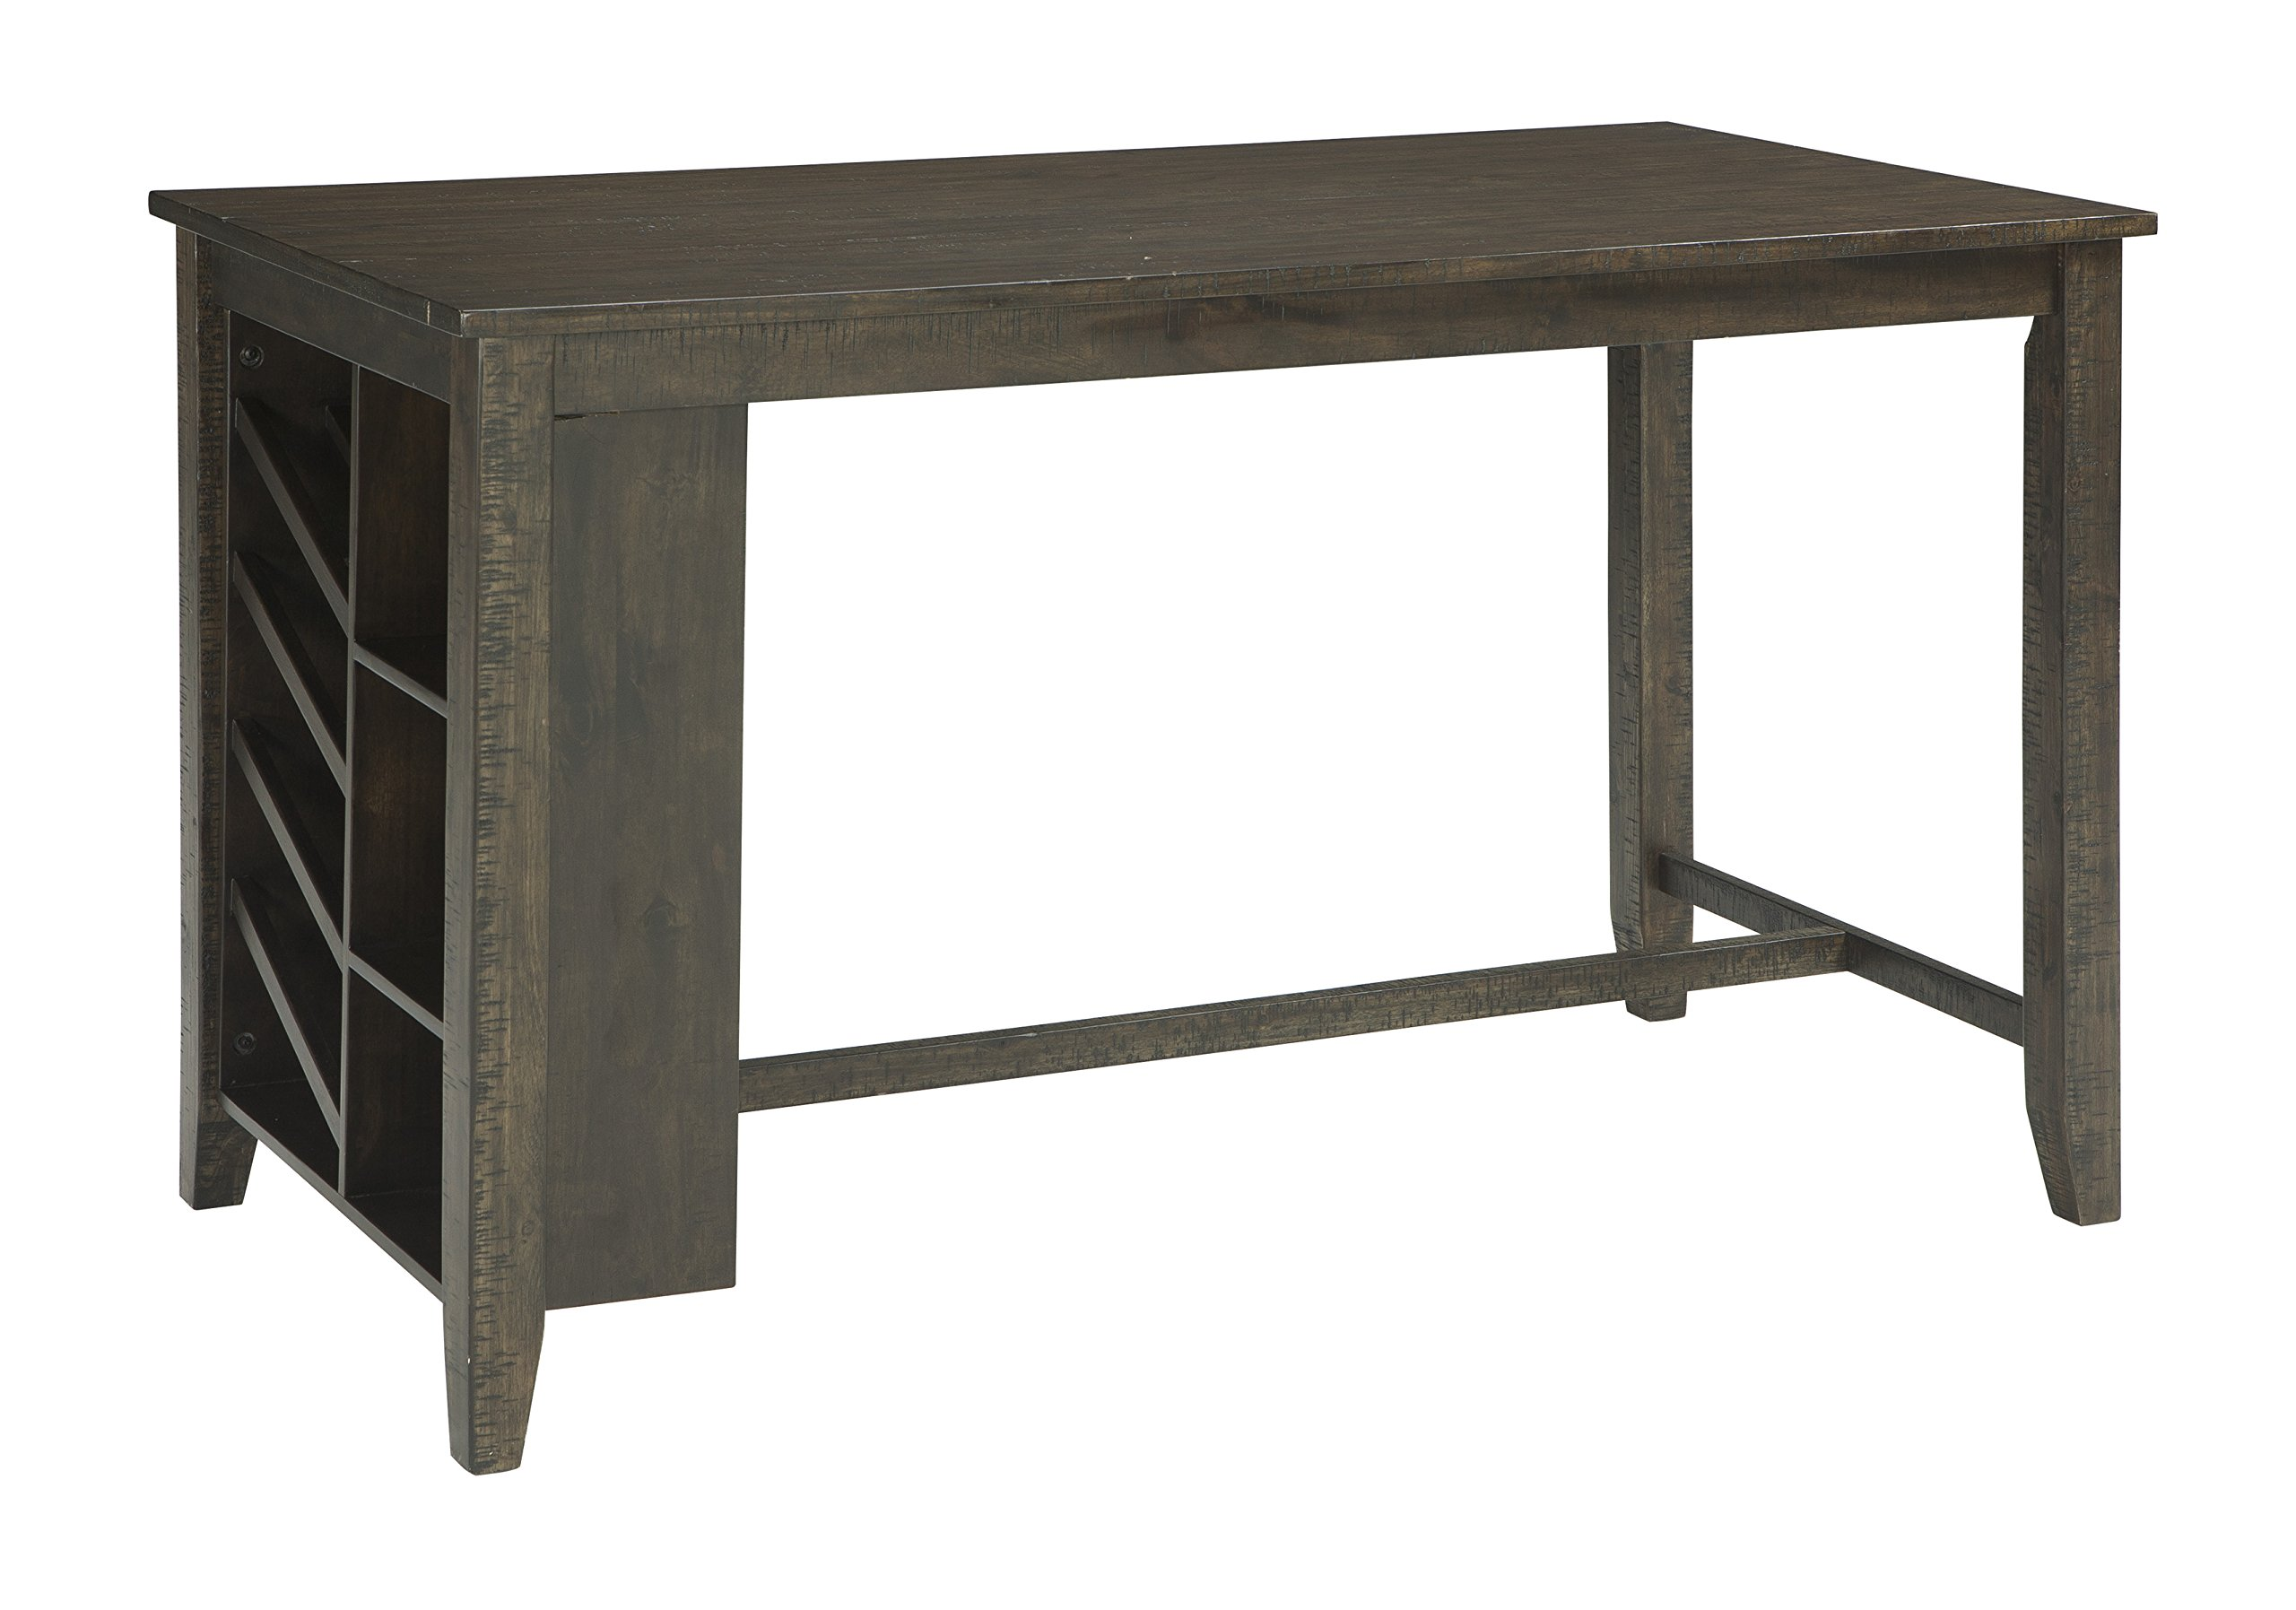 Signature Design by Ashley D397-32 Rokane Counter Height Dining Room Table, Brown